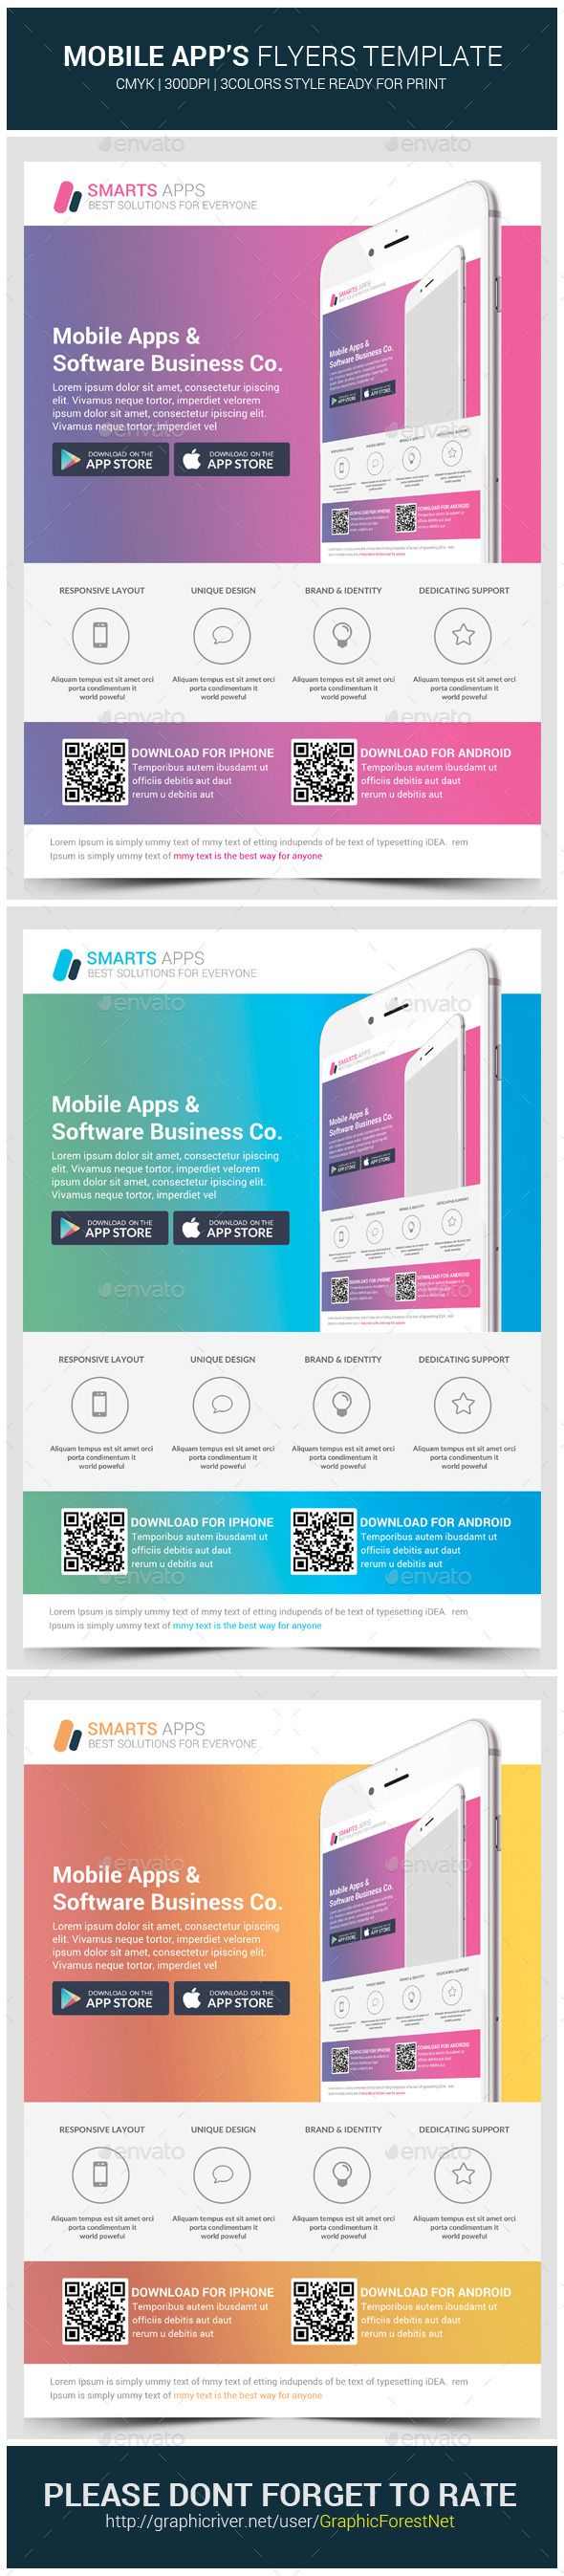 best ideas about promotional flyers food menu mobile apps promotion flyer template